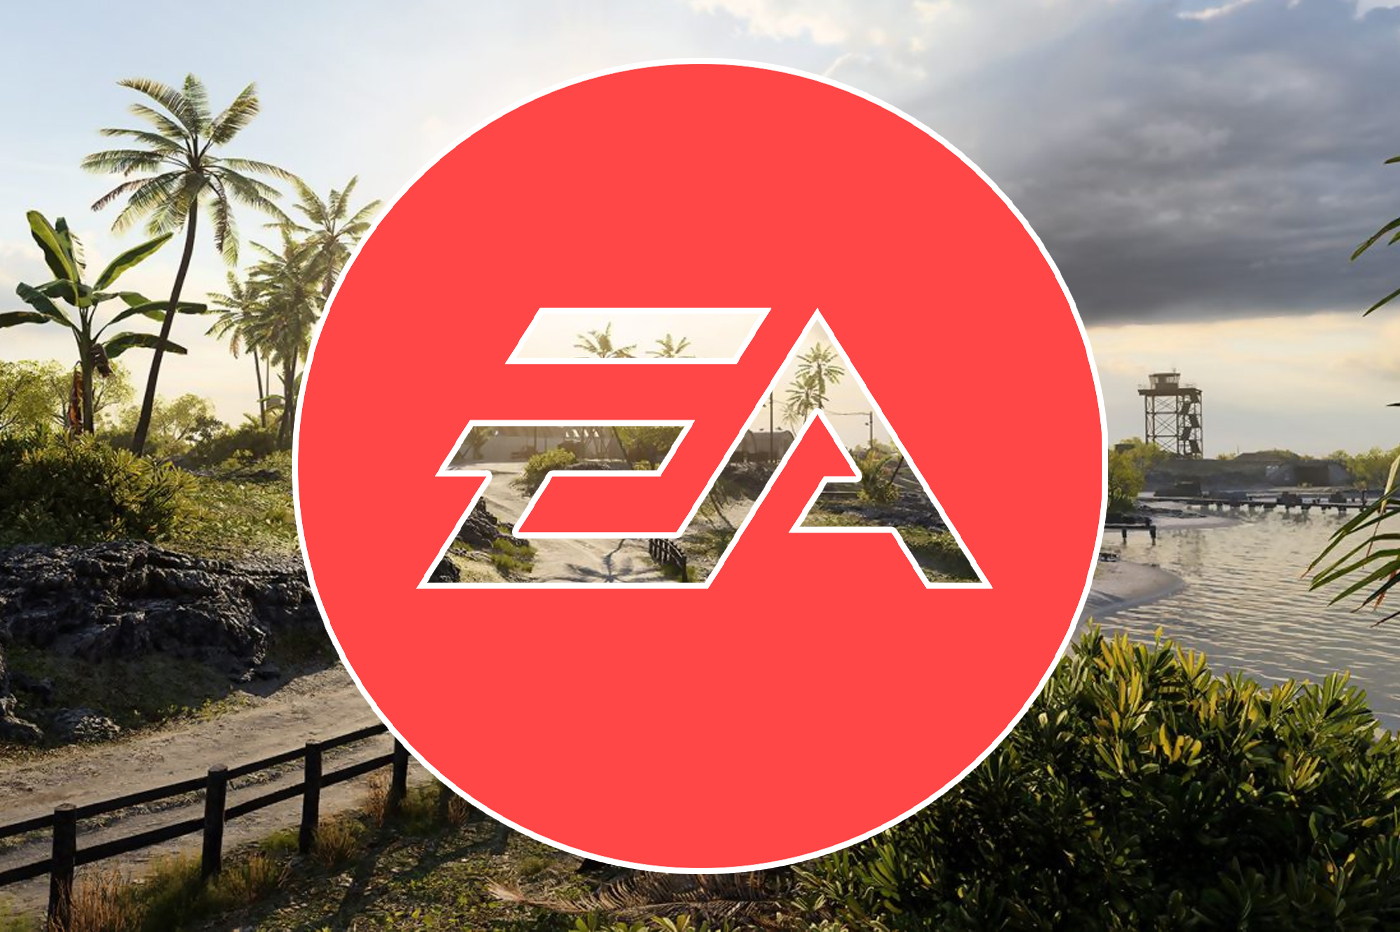 Electronic arts patents real world mapping